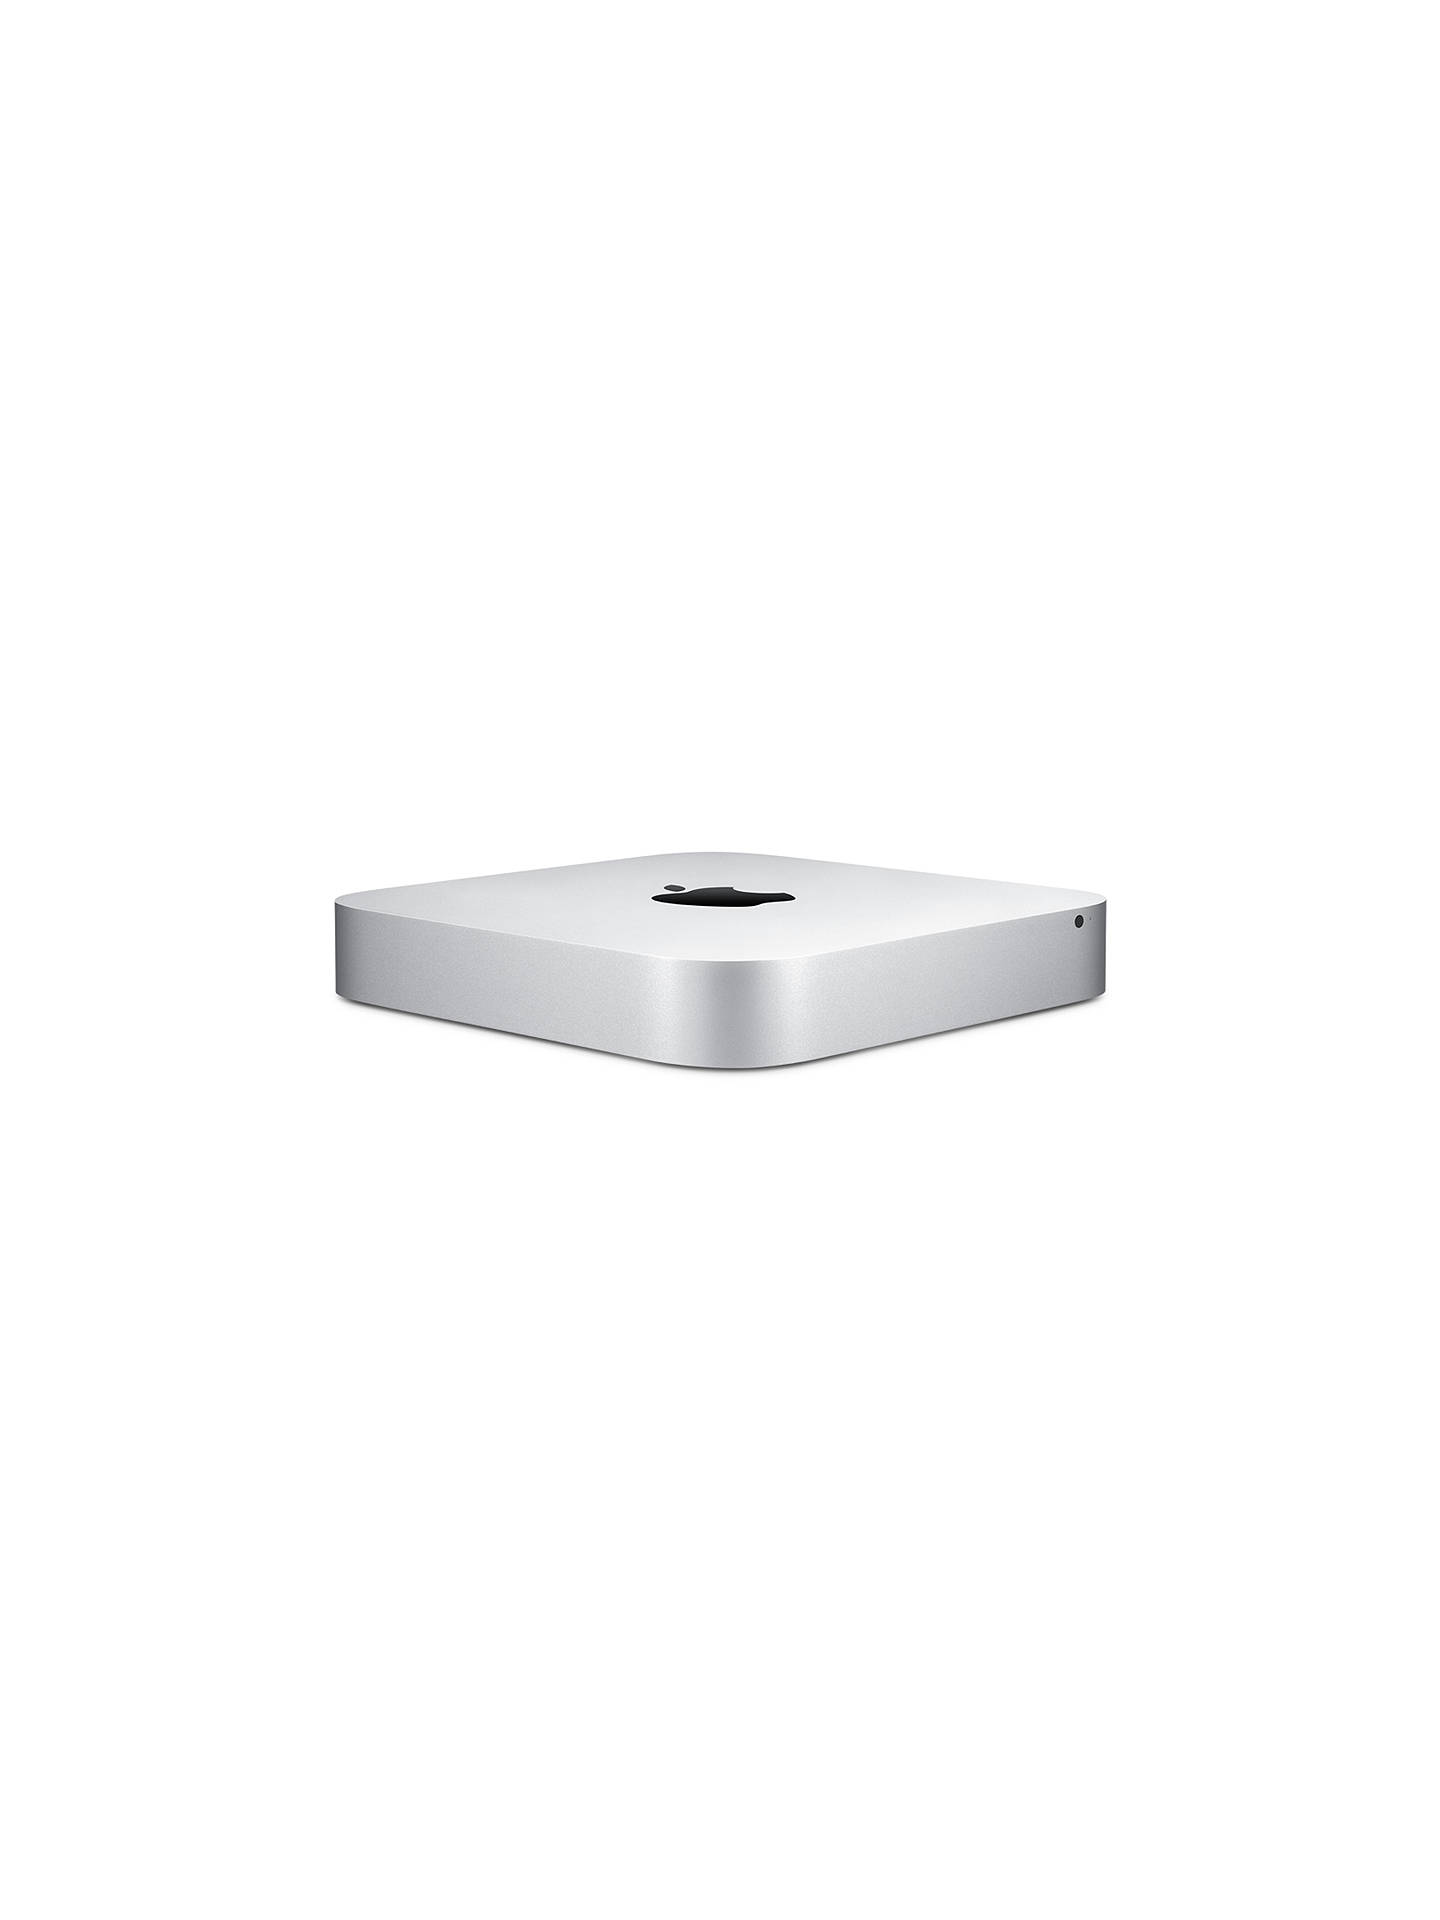 BuyApple Mac mini MGEM2B/A Desktop Computer, Intel Core i5, 4GB RAM, 500GB Online at johnlewis.com